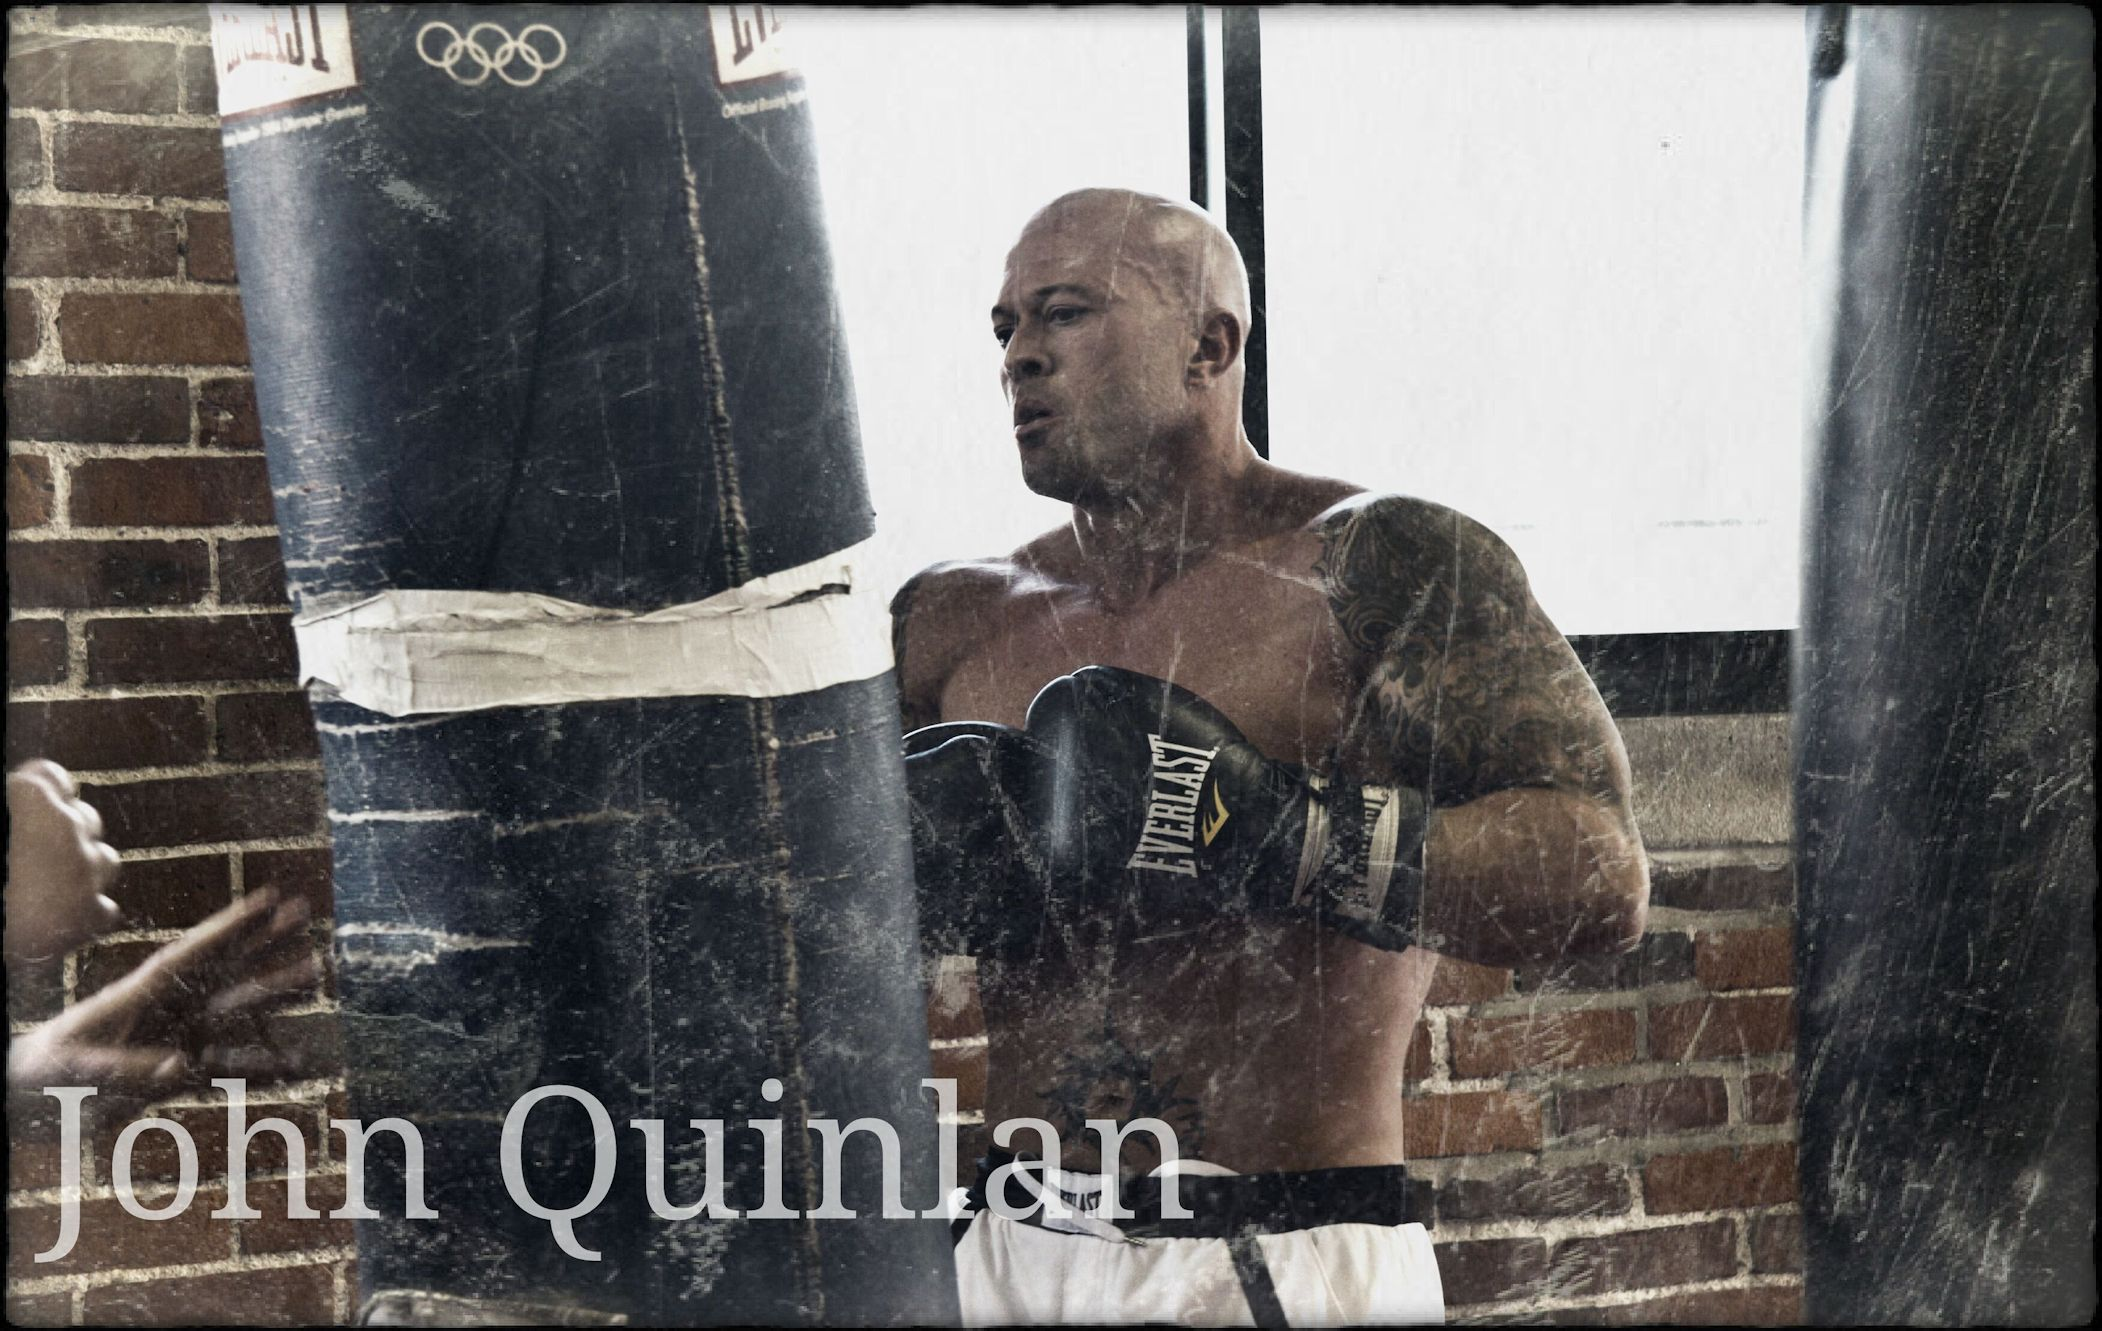 Actor & Model John Joseph Quinlan Boston Film Project Boxing Cruiser Weight Champion #JohnQuinlan